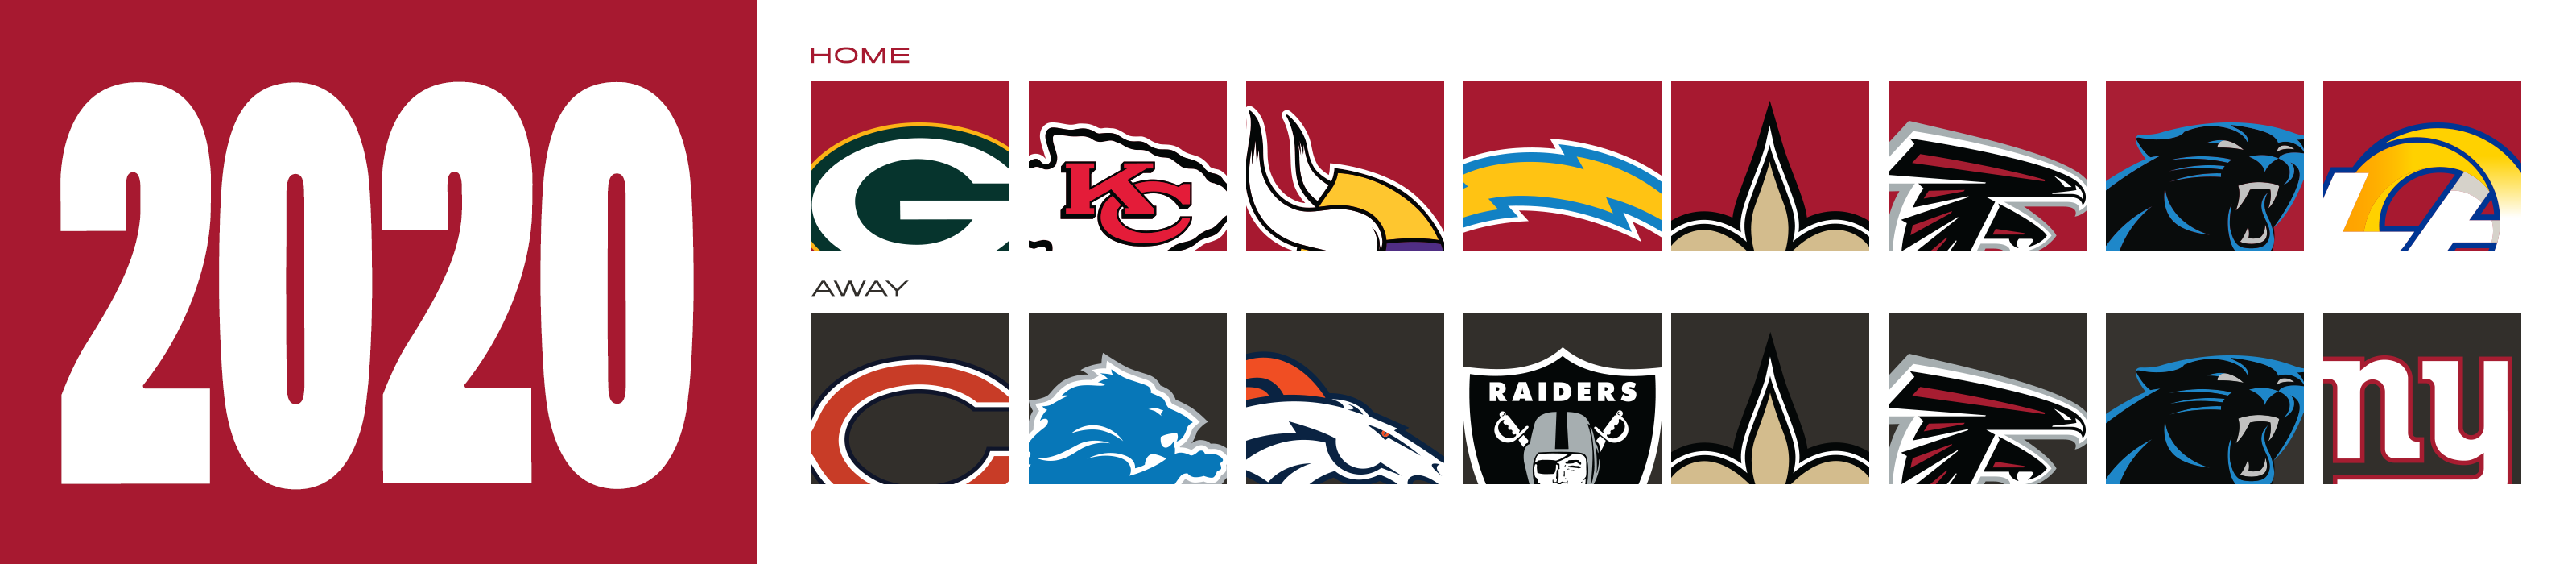 2020 Opponents - home - packers, chiefs, vikings, saints, chargers, falcons, panthers, rams away -bears, lions, broncos, raiders, saints, falcons, panthers, giants